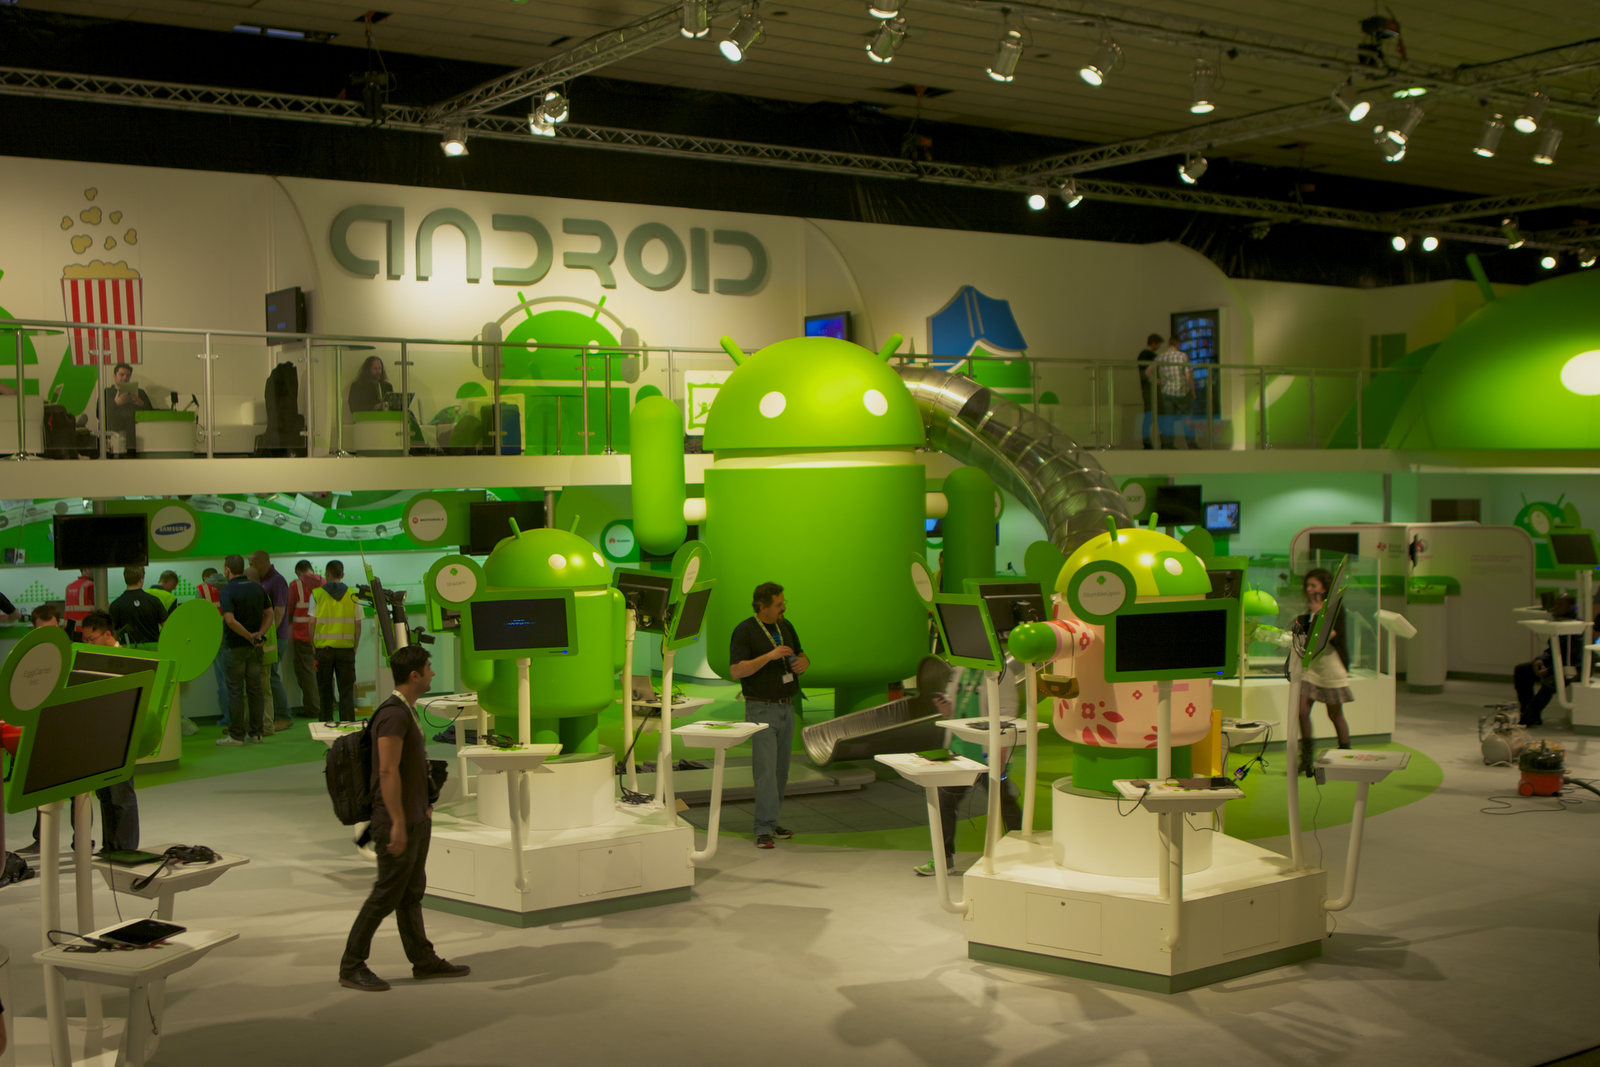 Android Reigns at The Mobile World Congress, The Invasion Android